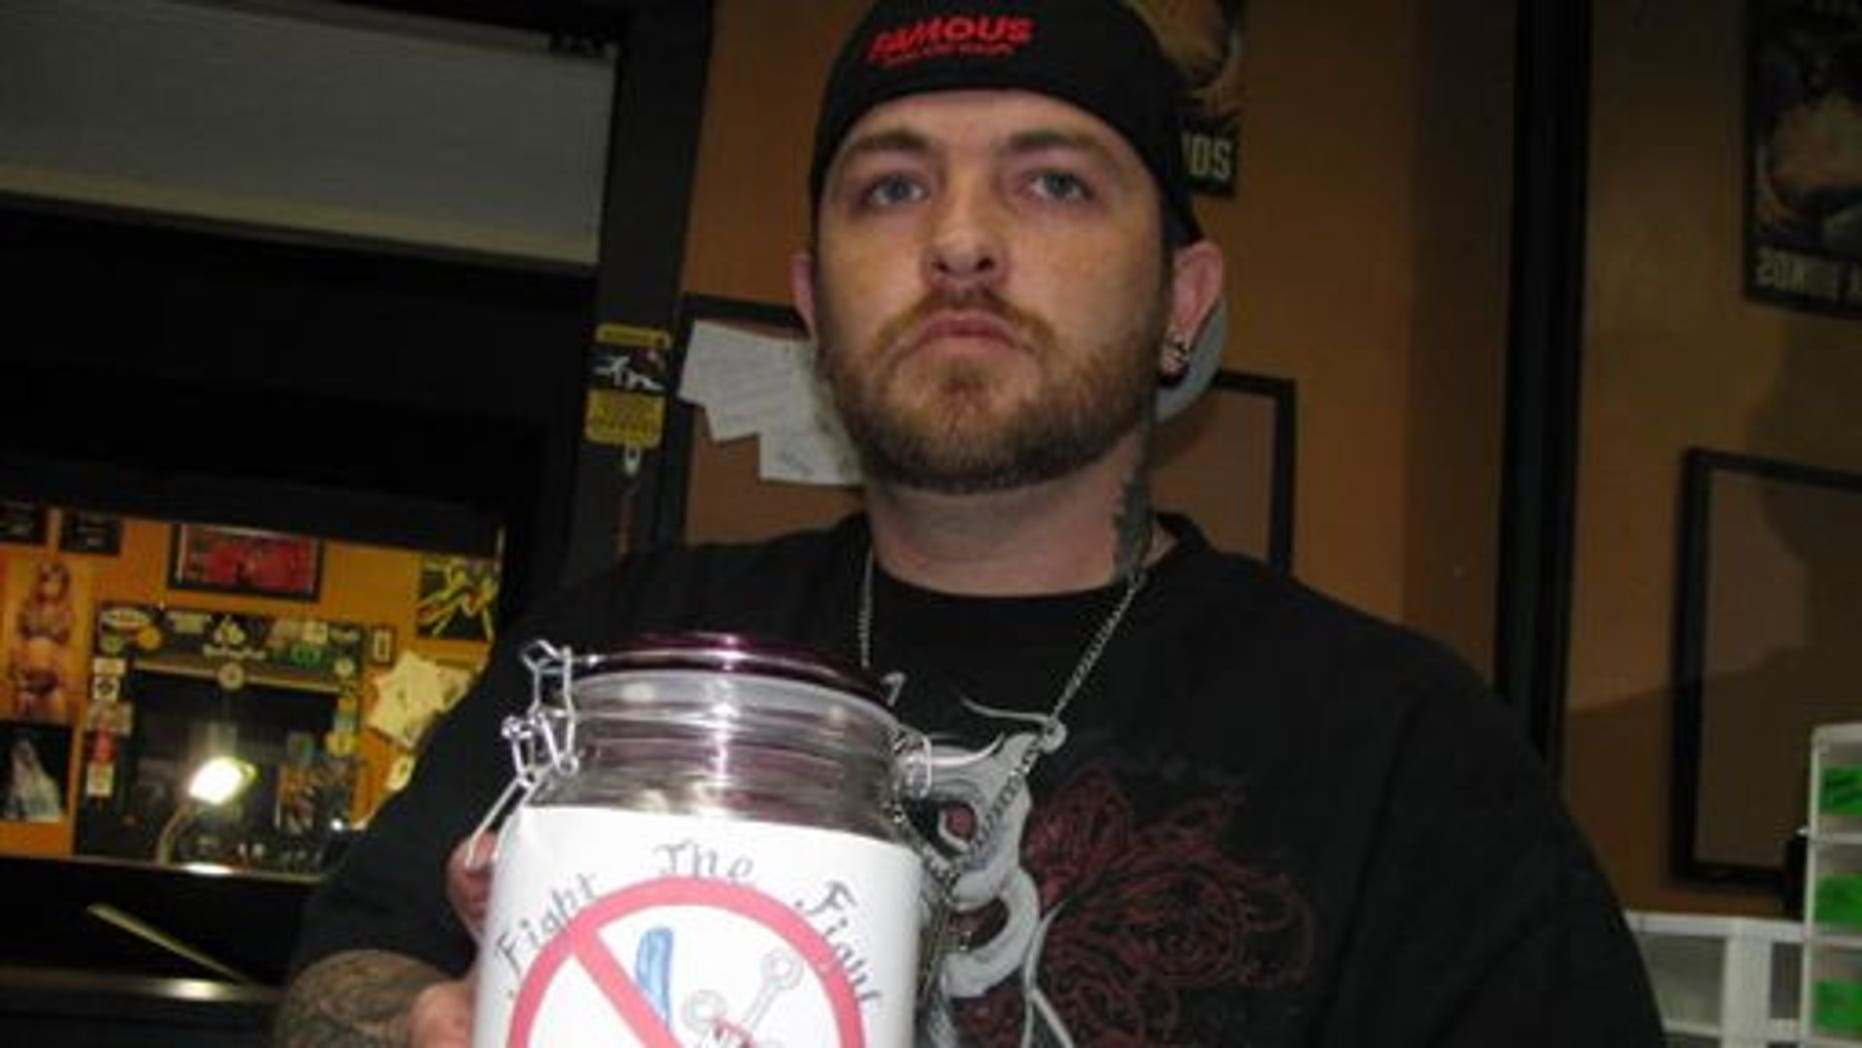 In this photo taken June 1, 2015, tattoo artist Justin Cantrell displays a fundraising jug bearing a tattoo design he created to help support recovering heroin addicts in Marion, Ohio in Marion, Ohio, after a spate of more than 30 overdoses in an 11-day period at the end of May. (AP Photo/Mitch Stacy)